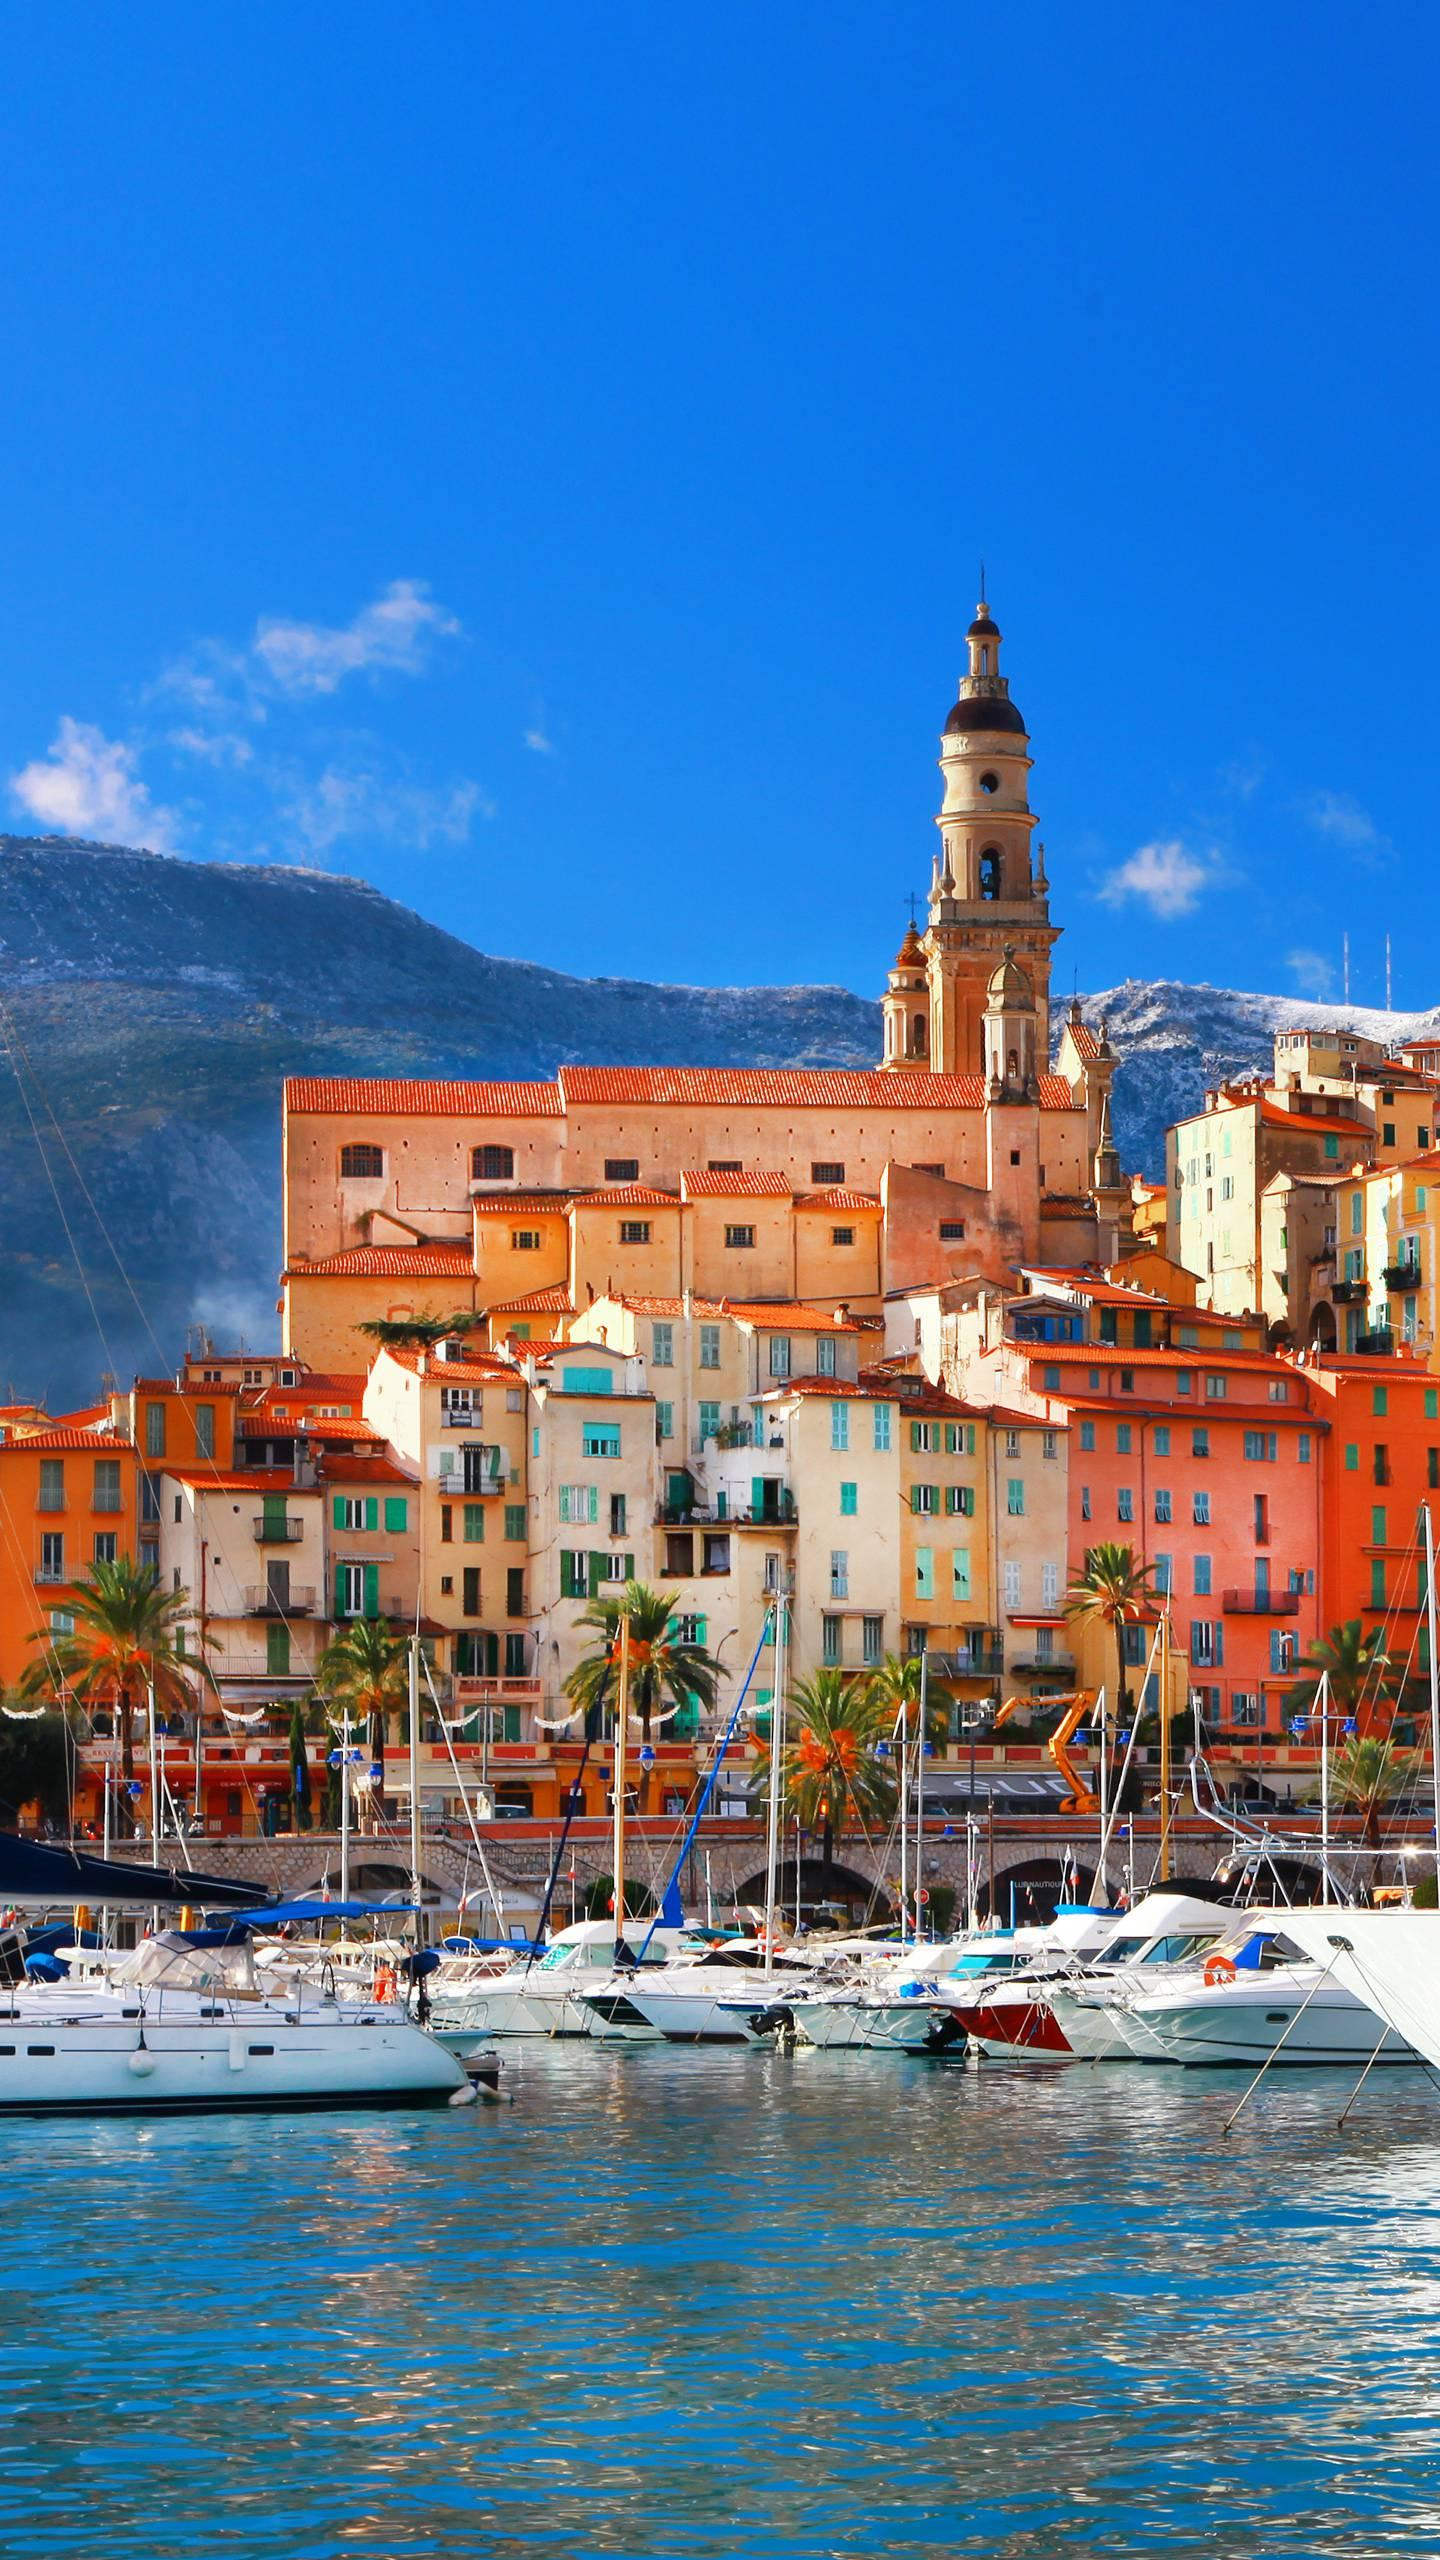 France - Menton, southeast of France, surrounded by palm trees and lemon trees, is filled with a charming subtropical atmosphere.